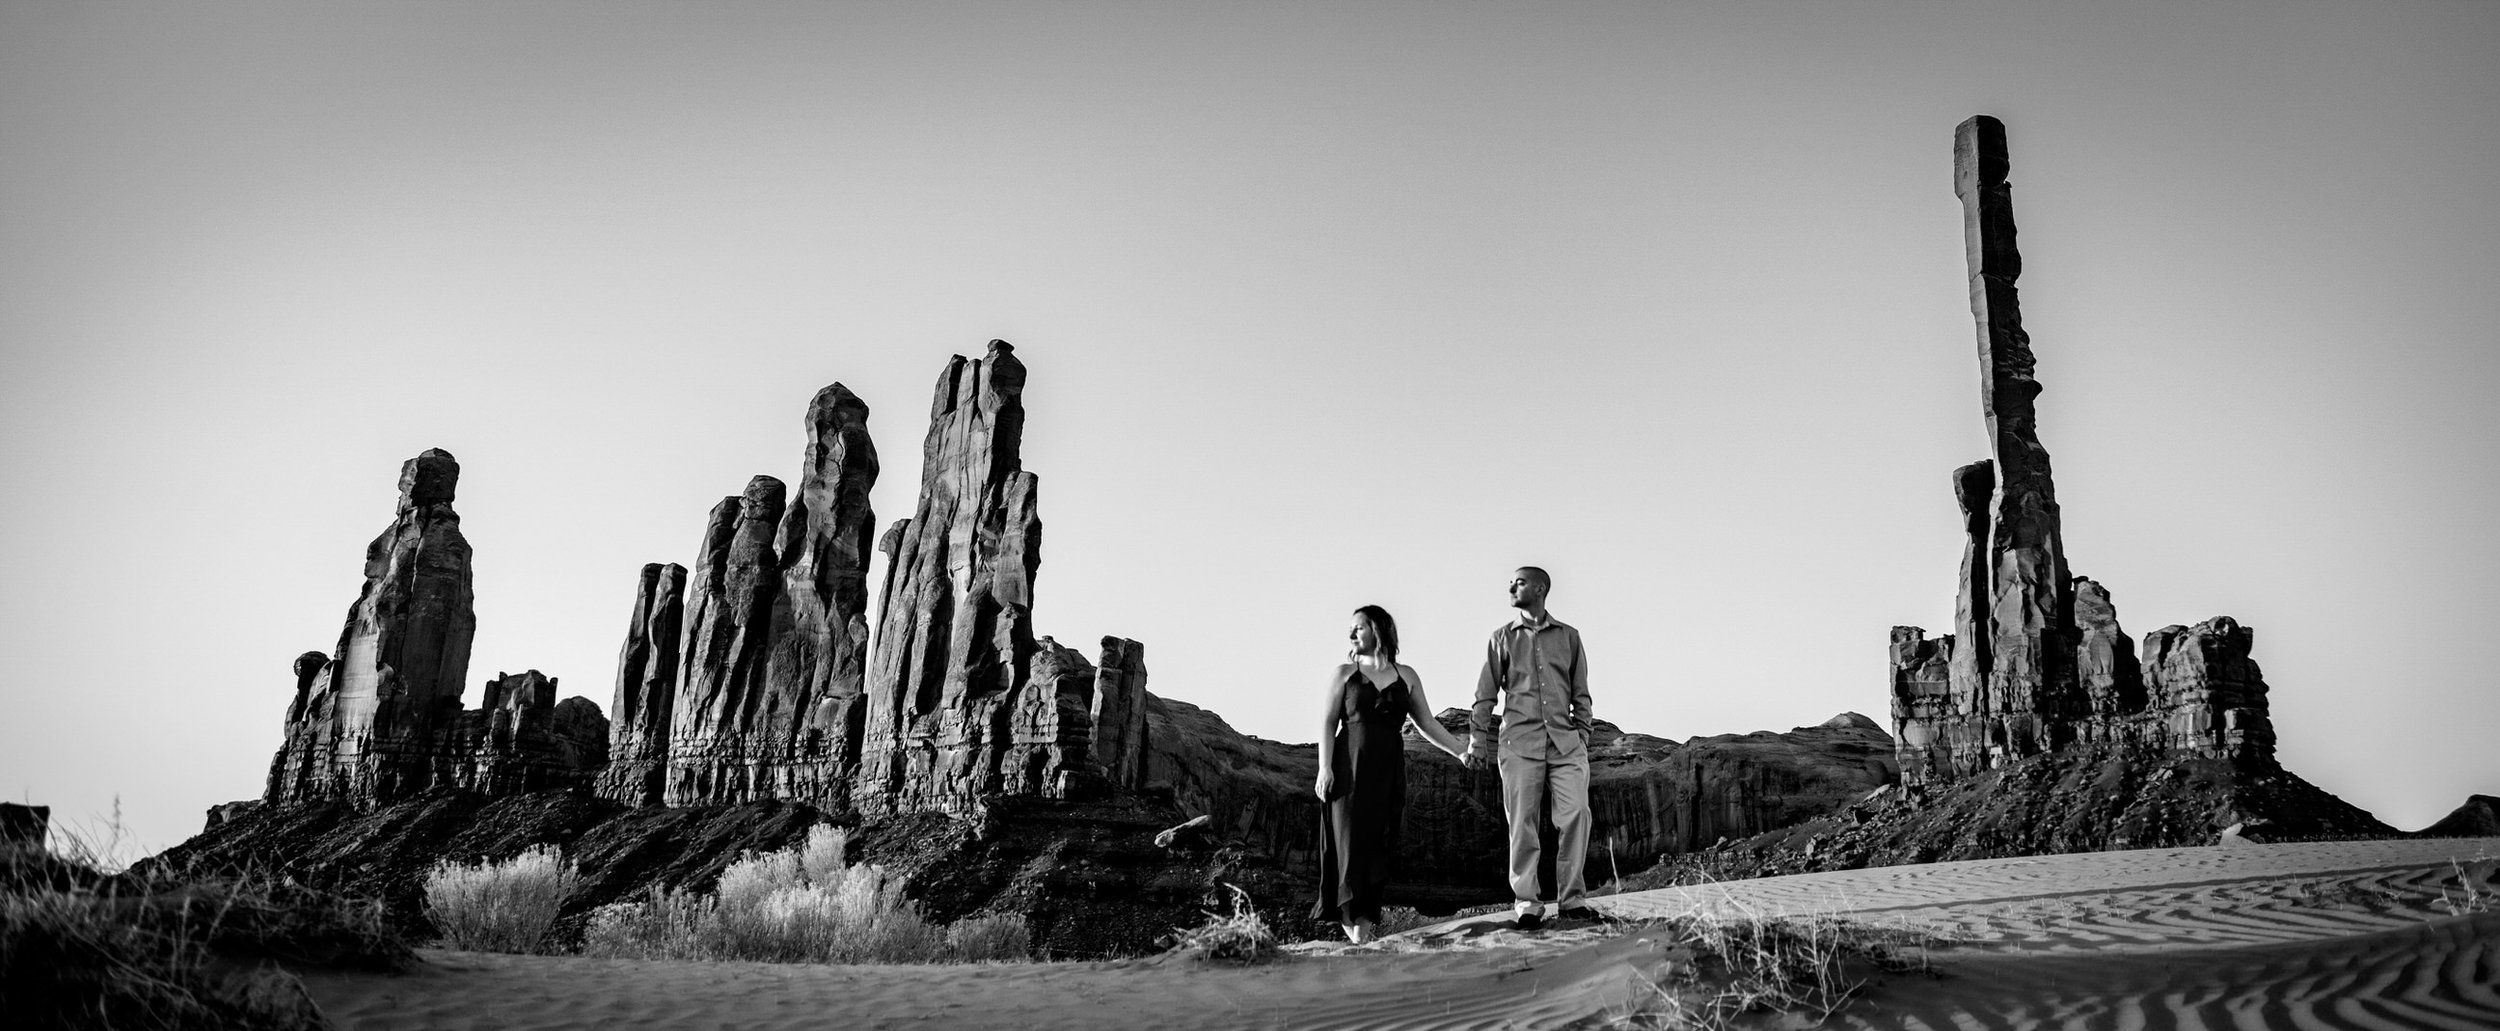 MonumentValleyEngagement-Alicia&Rob-1391.jpg